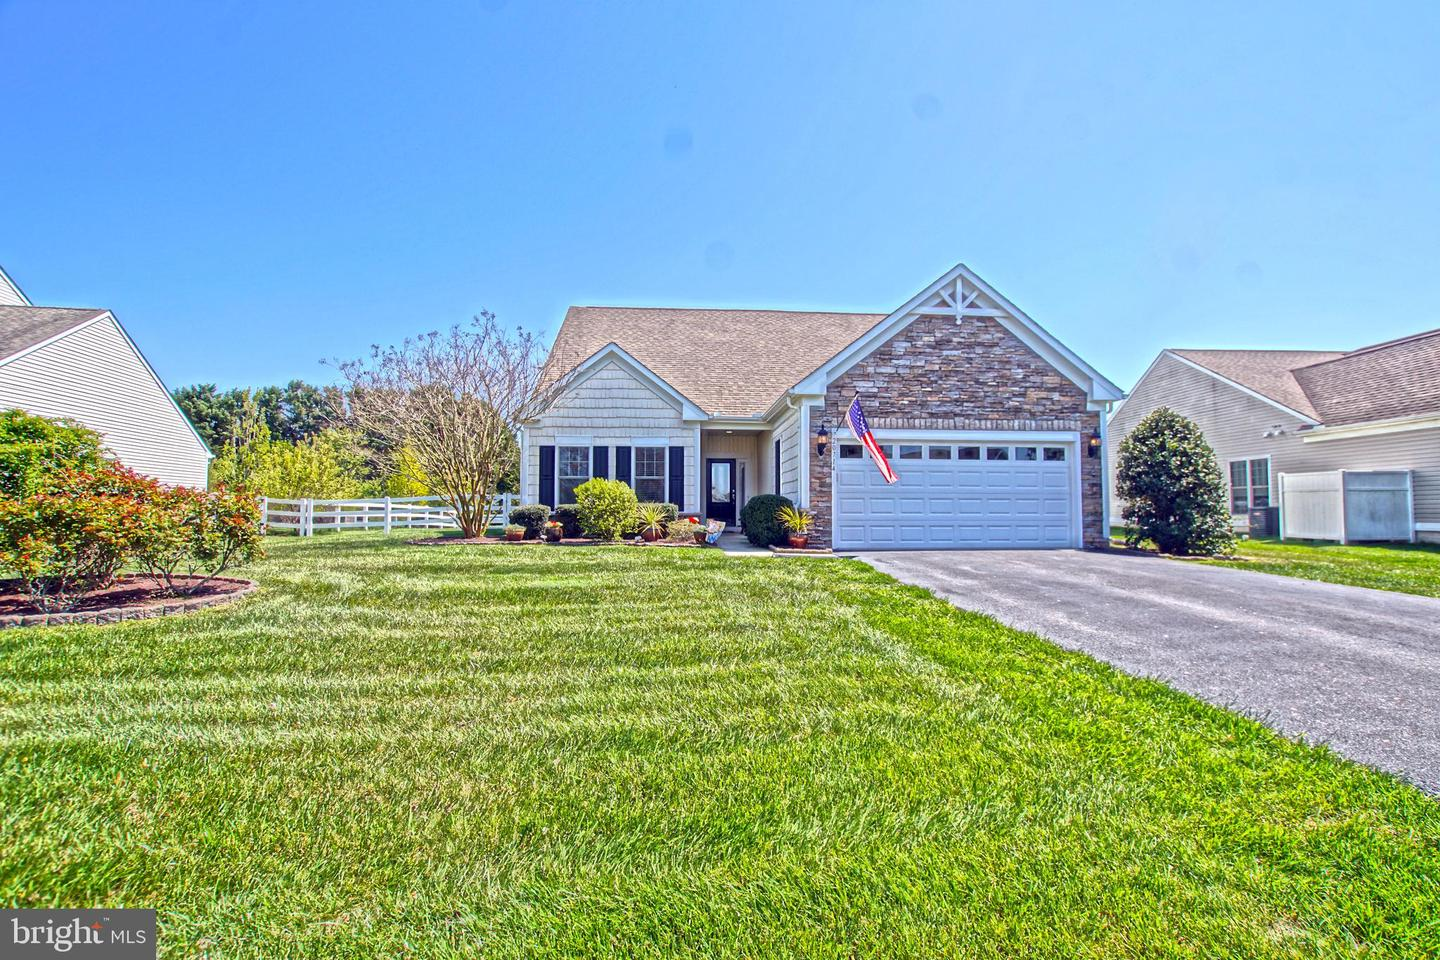 DESU159976-304104337052-2020-06-26-12-55-11 20714 Annondell Dr | Lewes, DE Real Estate For Sale | MLS# Desu159976  - Lee Ann Group